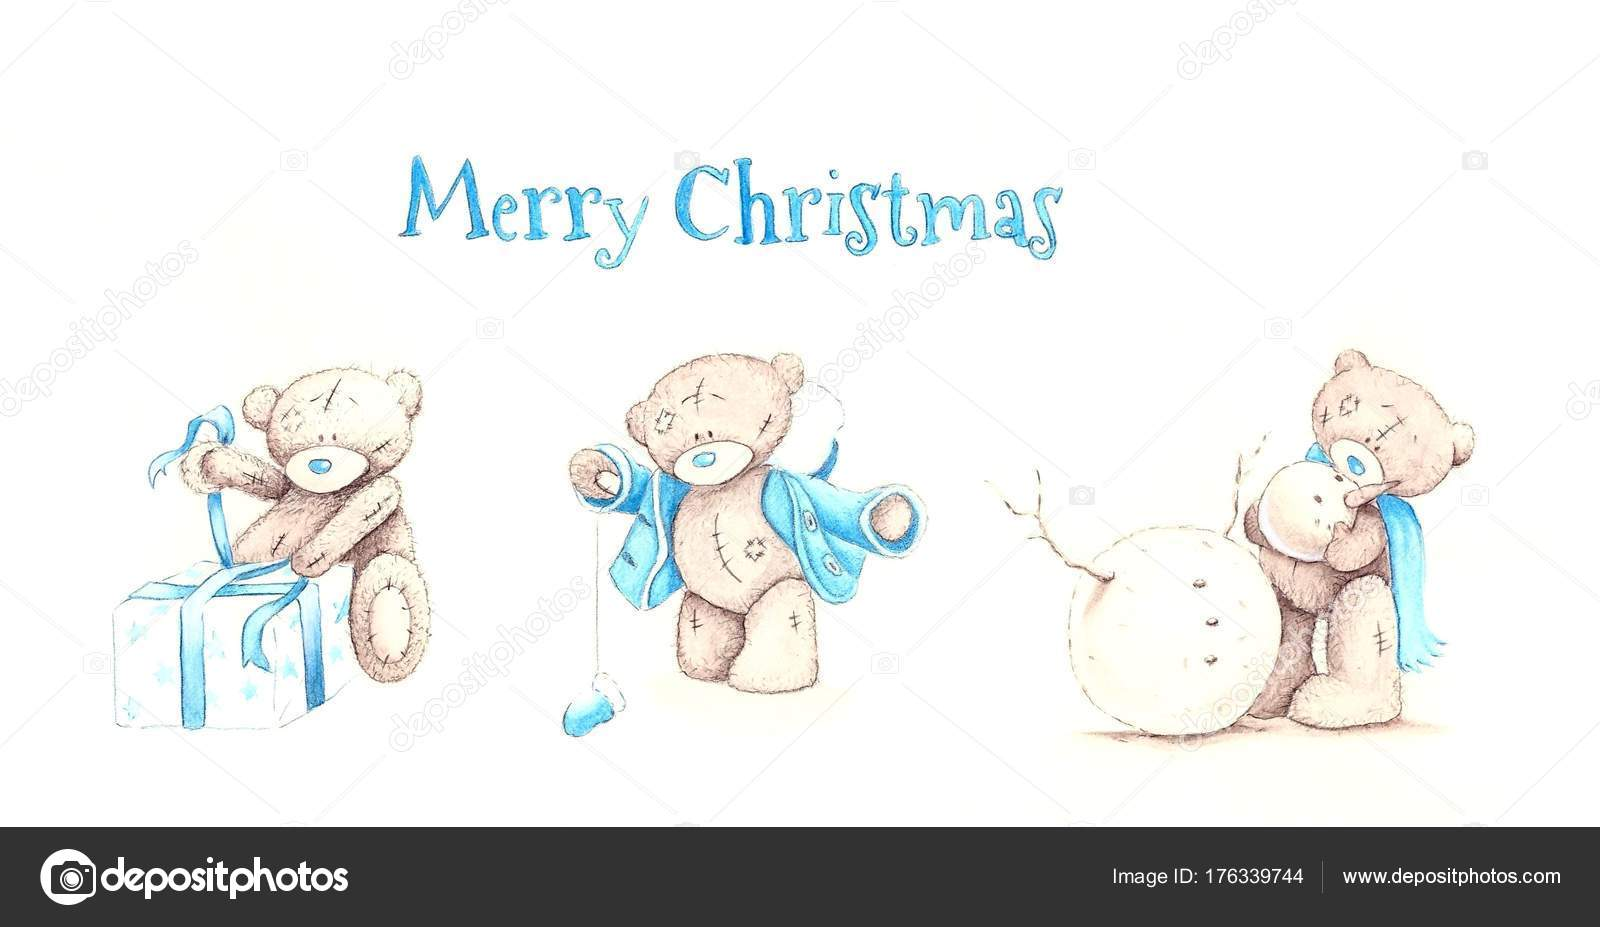 set of cute hand drawn watercolor toy teddy bears in blue colors isolated on white background new year background for card and congratulation with white